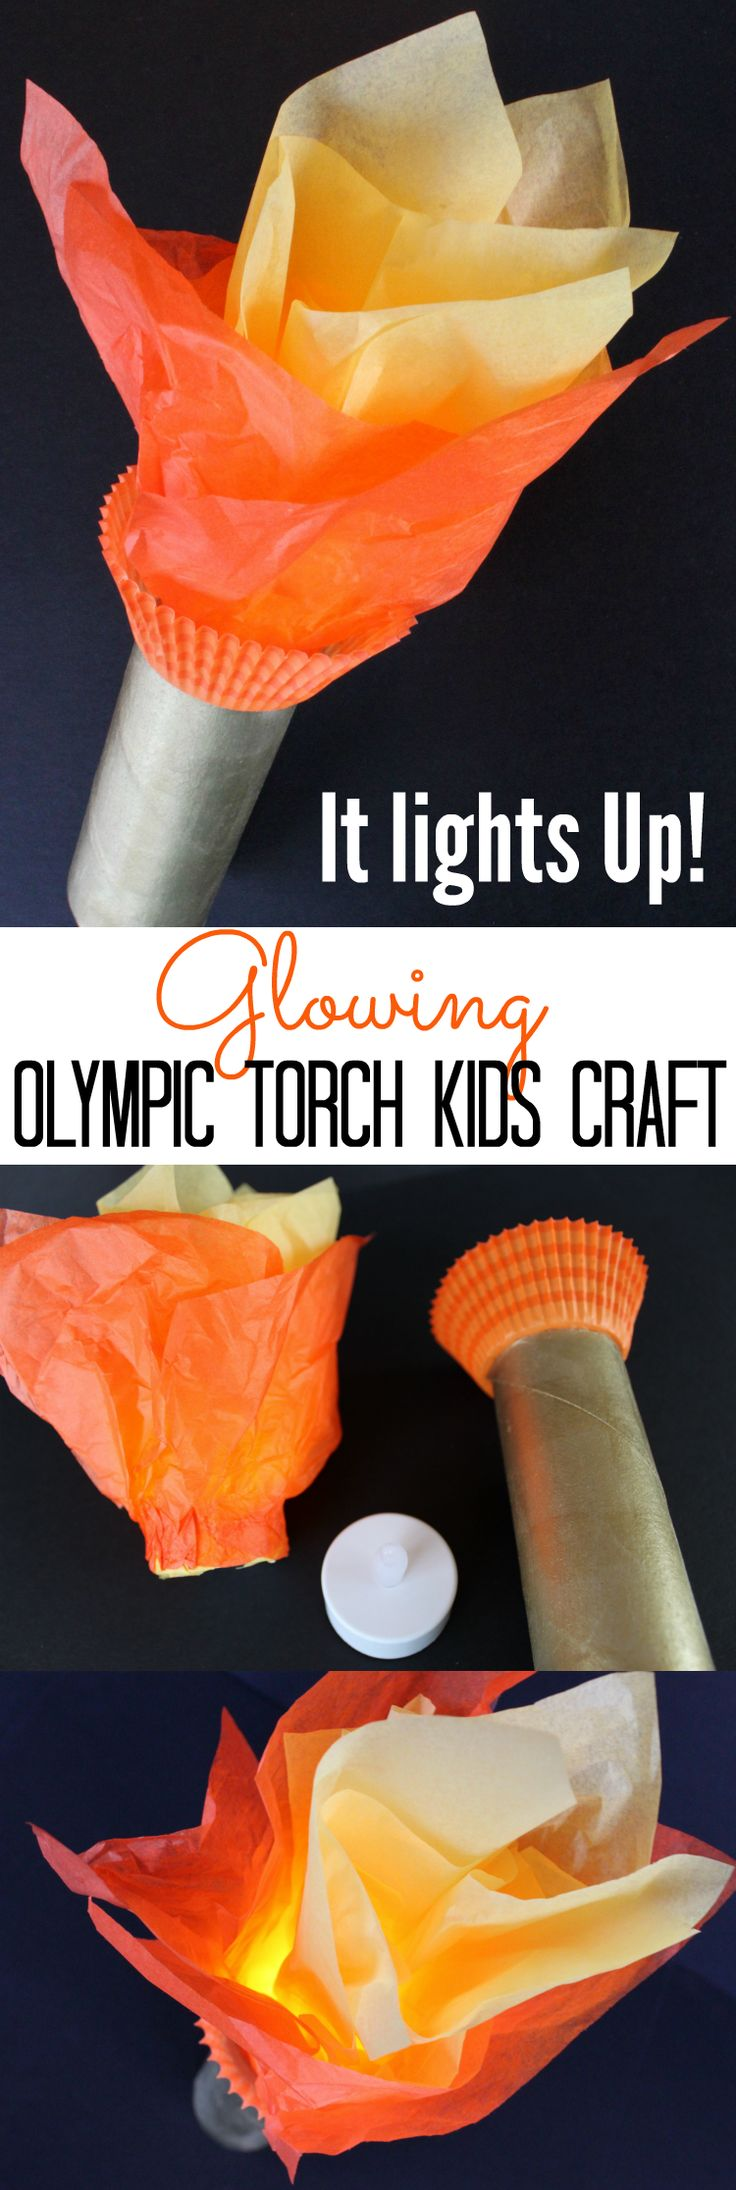 IT LIGHTS UP! Glowing Tealight Olympic Torch Kids Craft for the Summer Olympics and Winter Olympics games